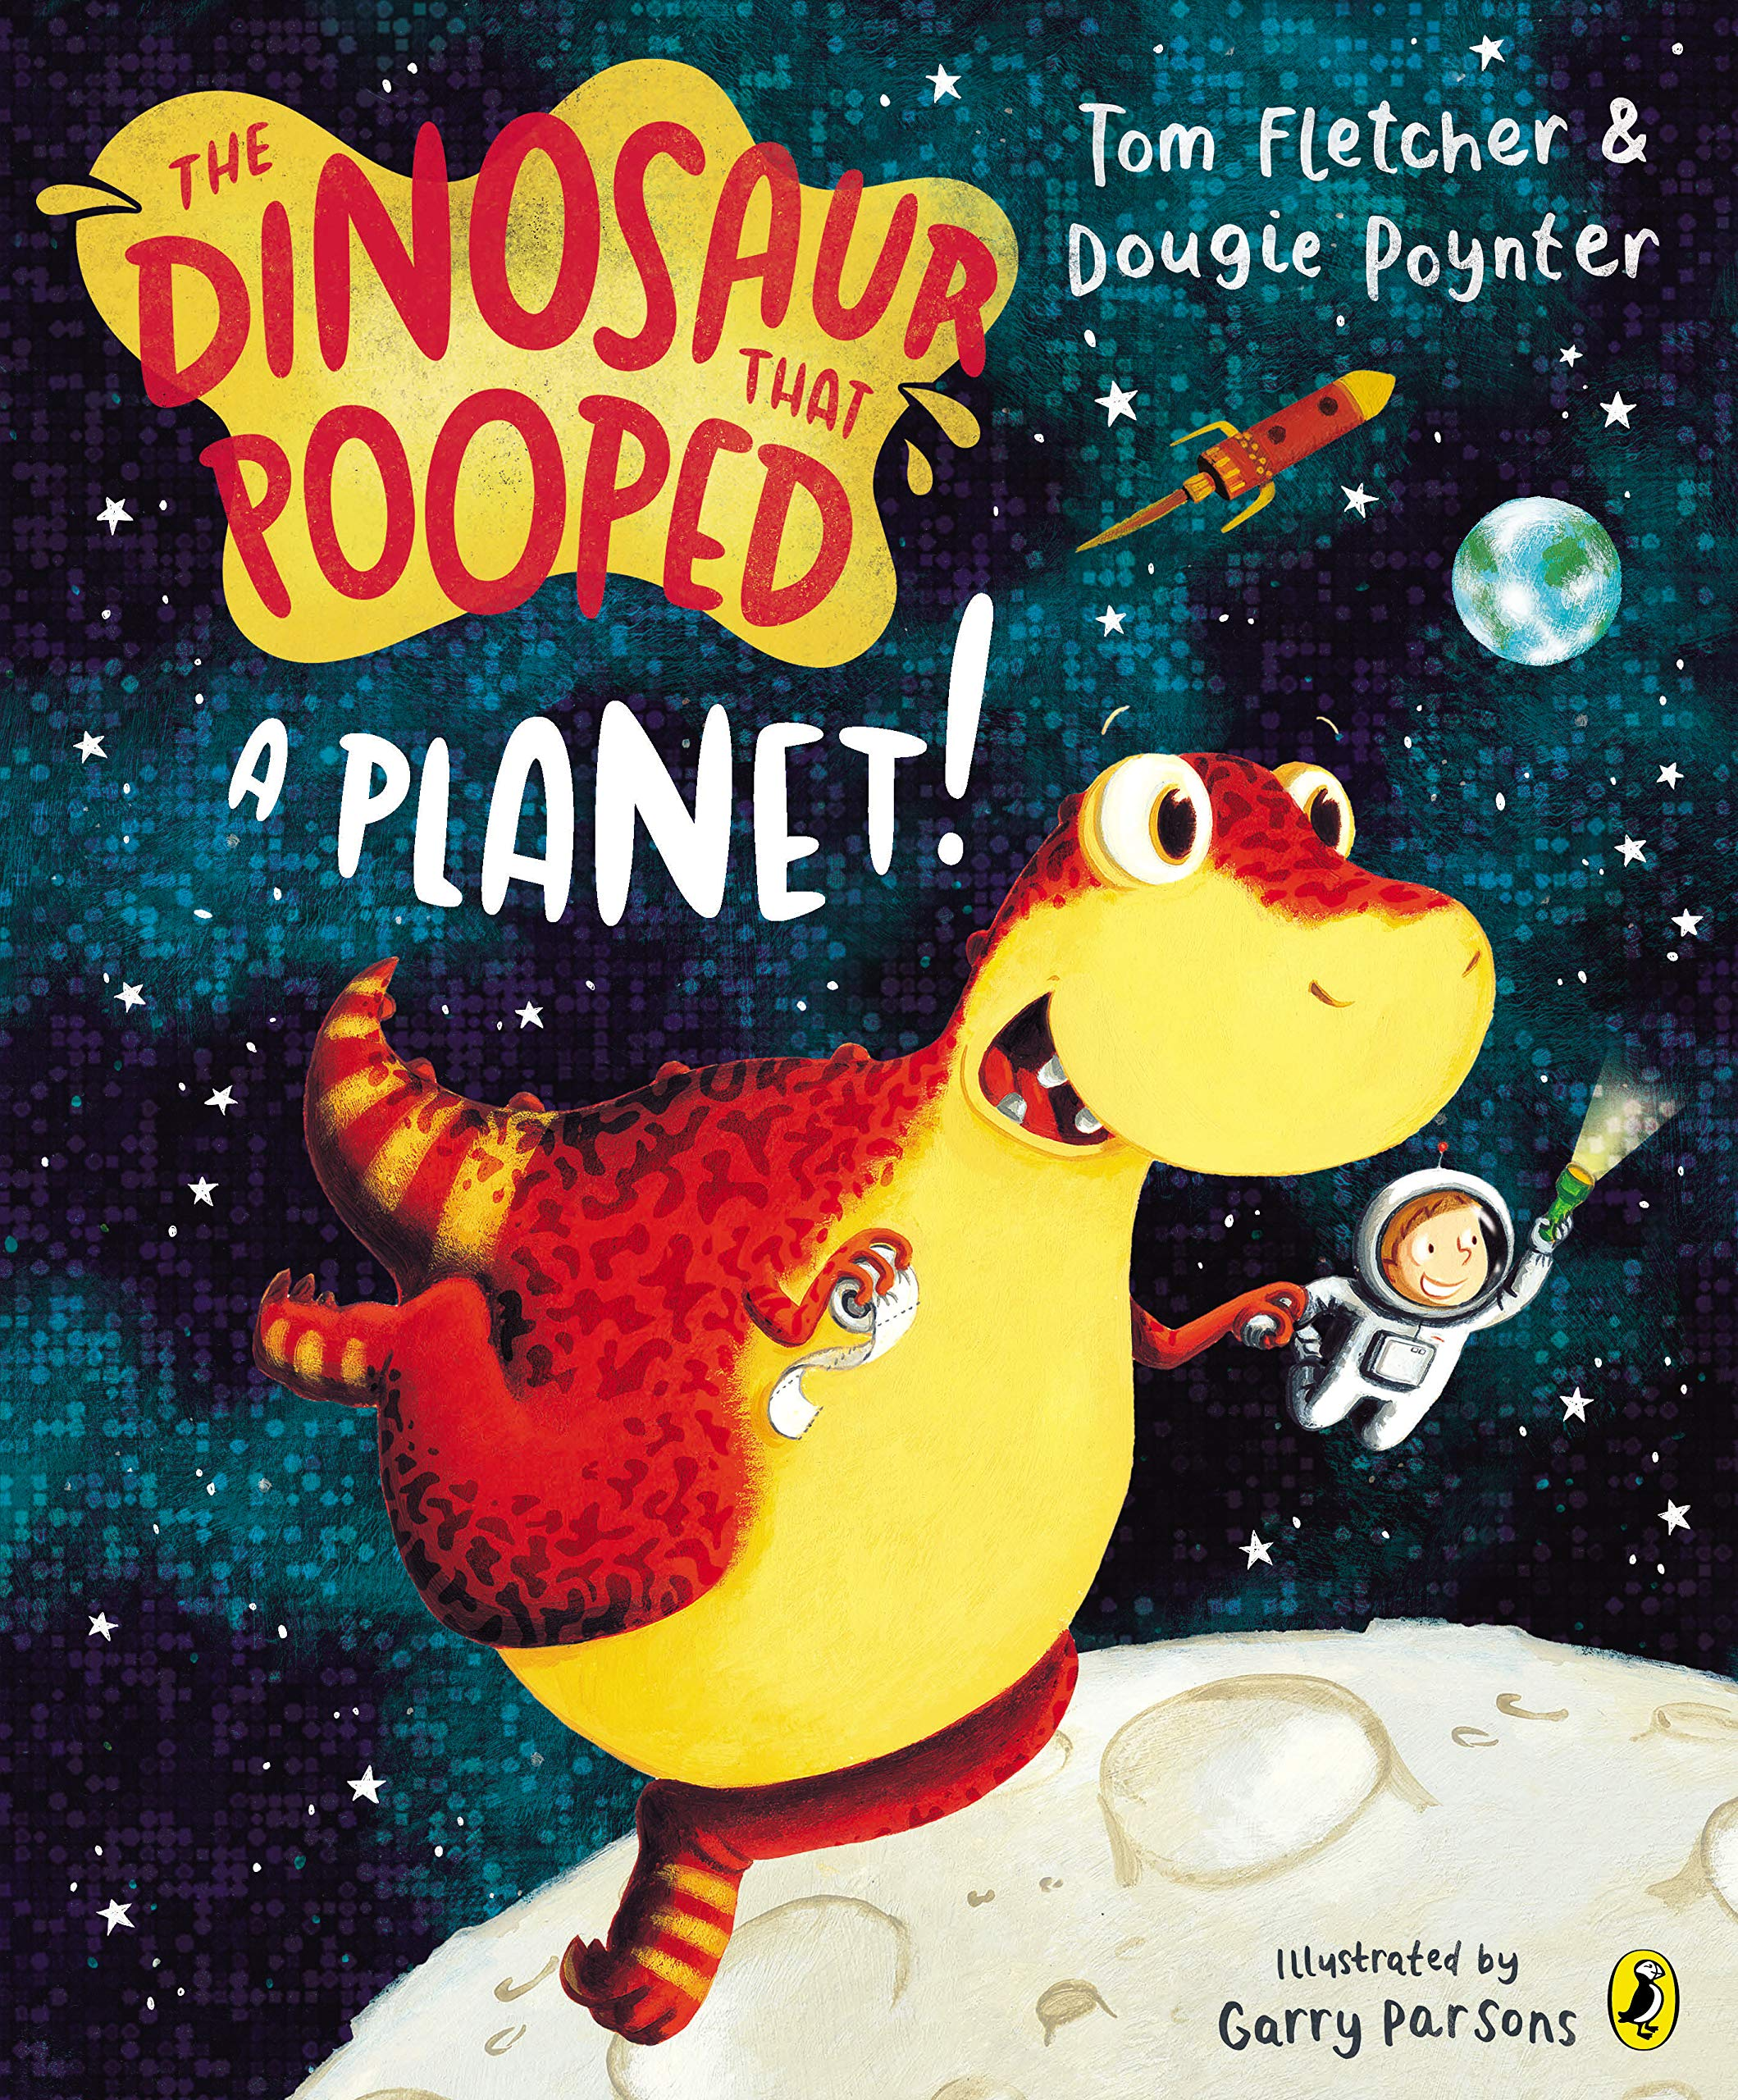 The Dinosaur That Pooped A Planet!: Amazon.co.uk: Fletcher, Tom ...